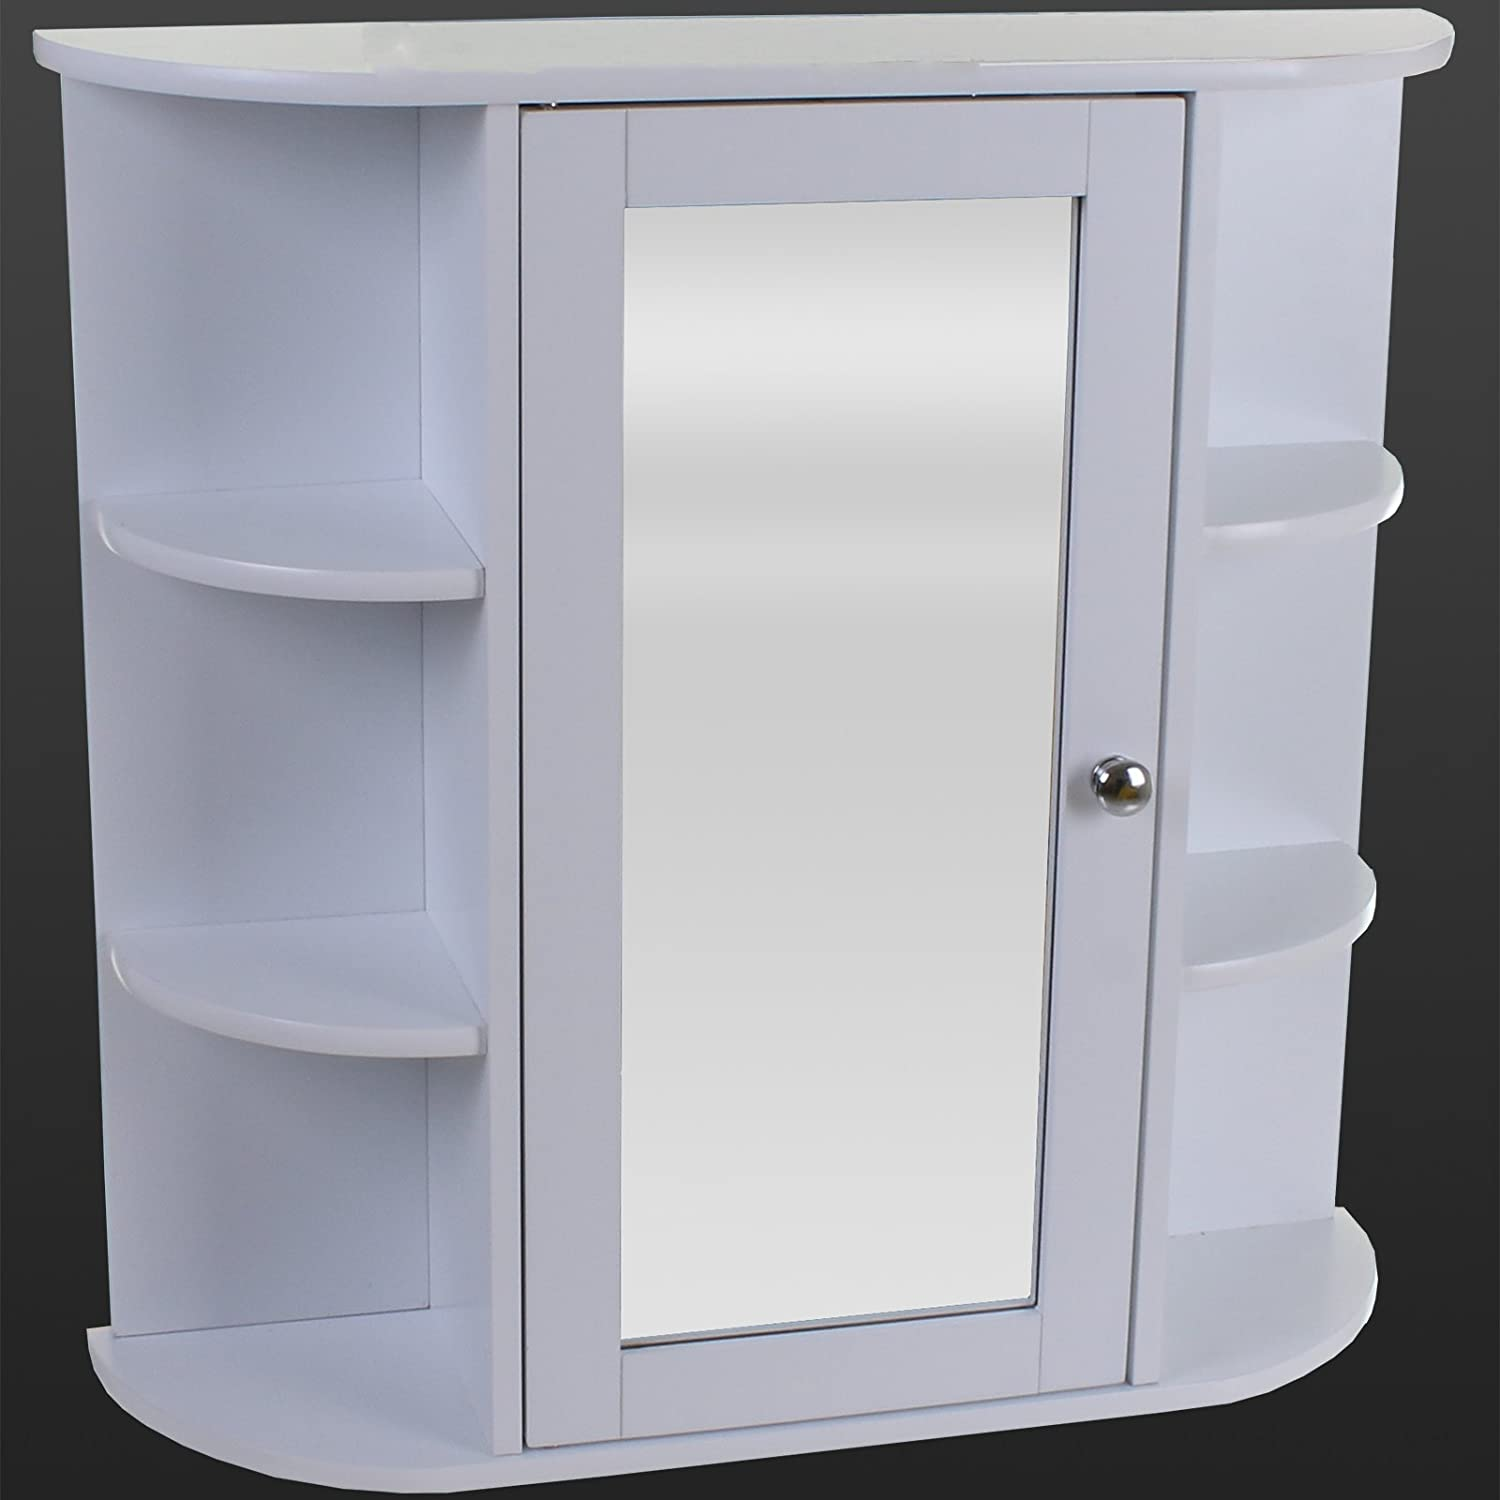 White Wooden Indoor Wall Mountable Bathroom Cabinet With Shelves And Mirror Door Amazoncouk Kitchen Home